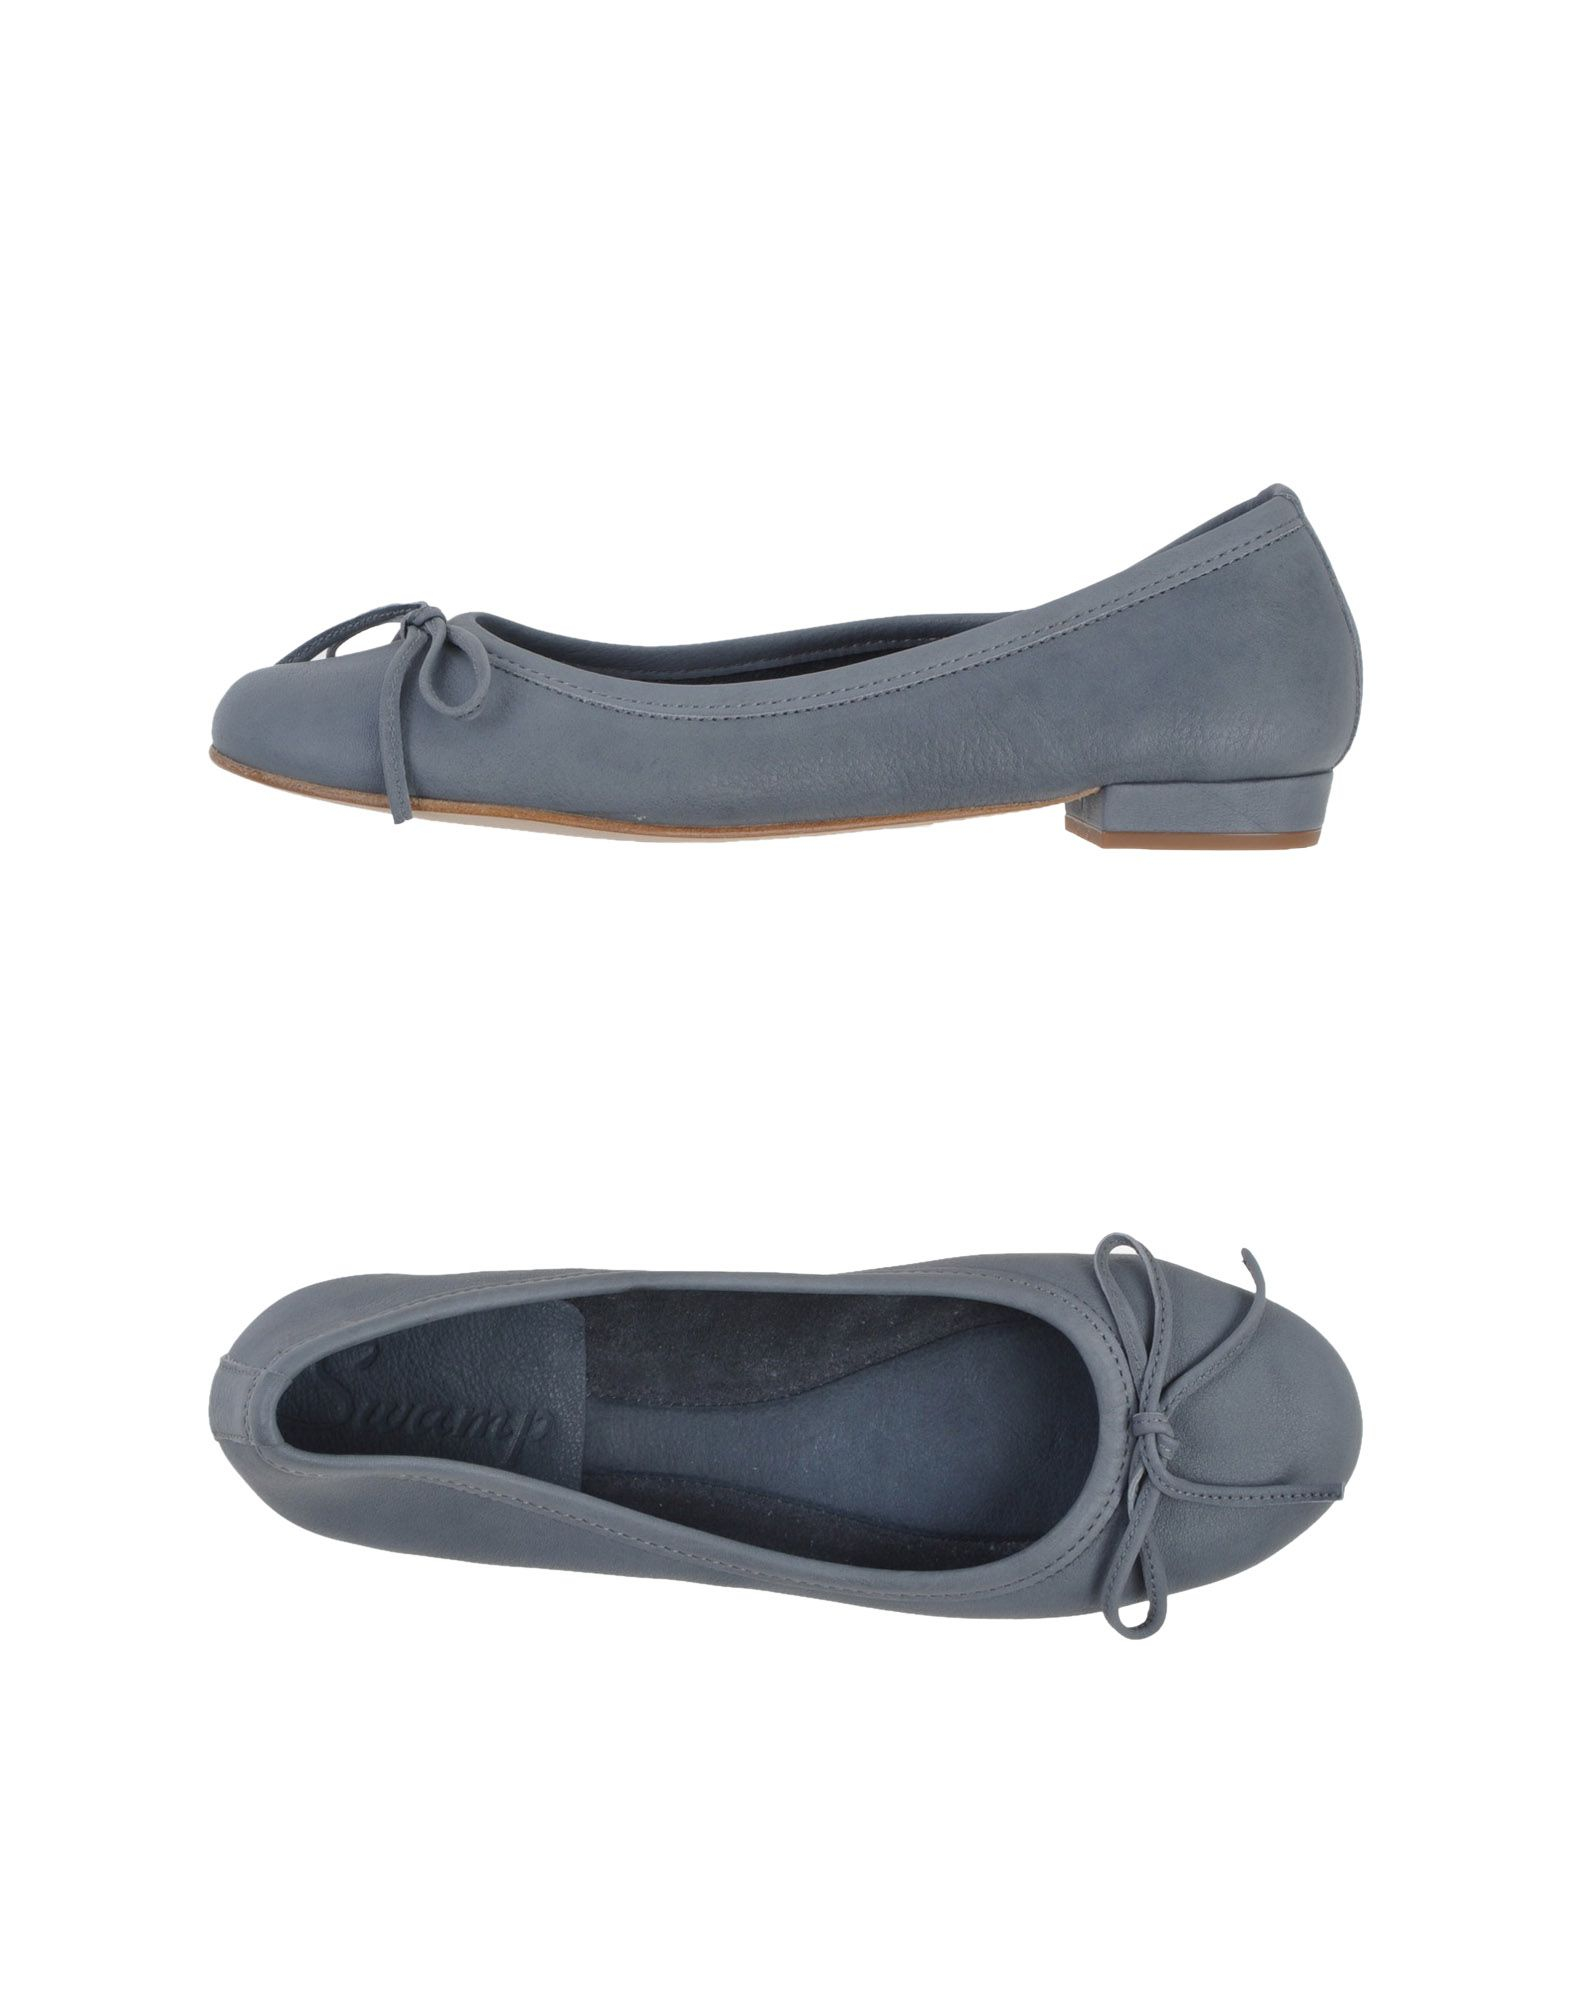 Find great deals on eBay for grey ballet flats. Shop with confidence.